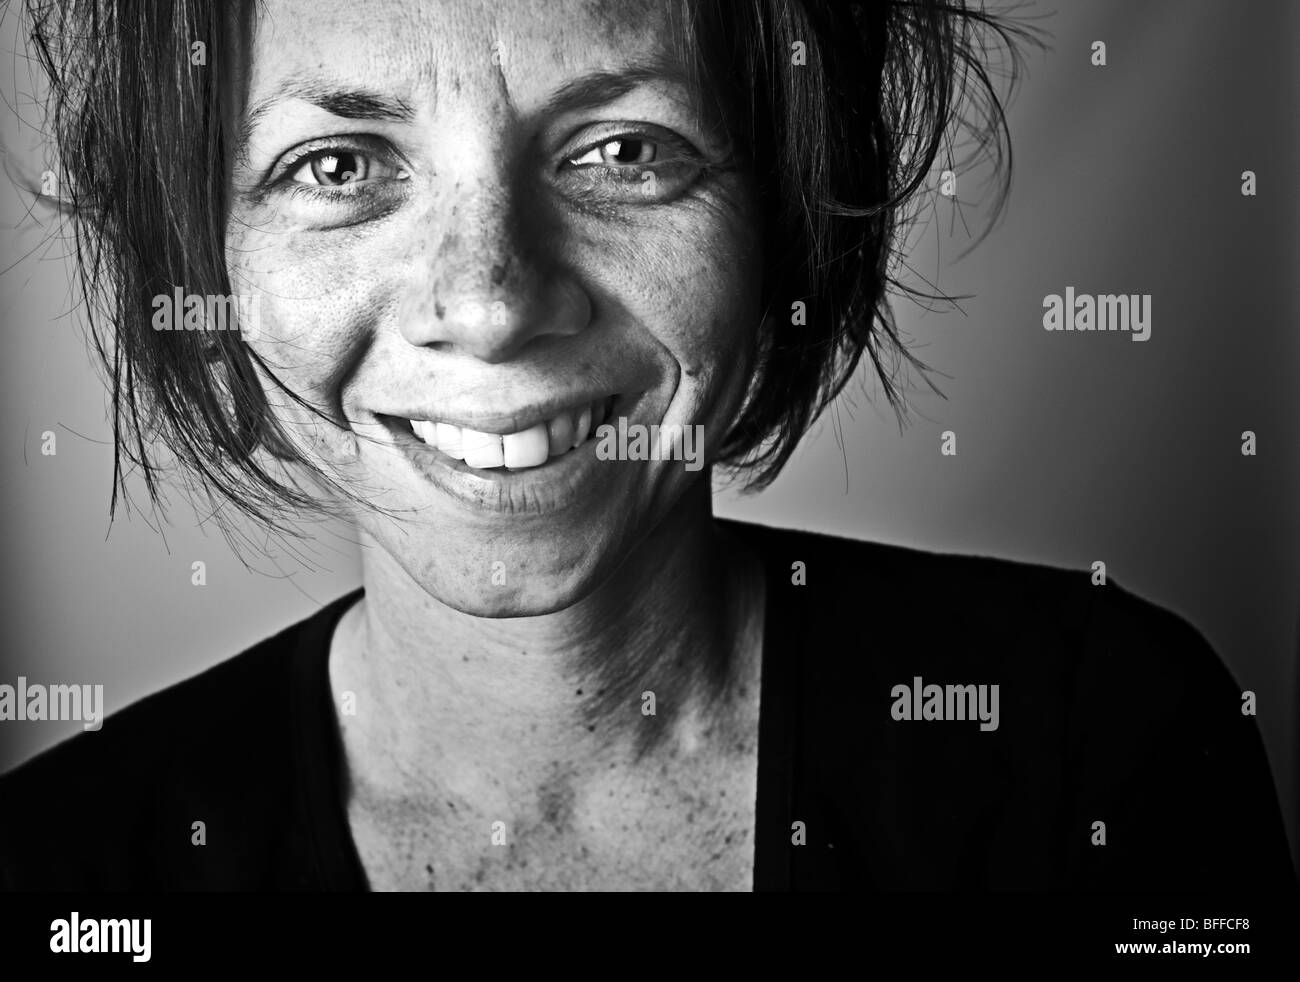 Black and White Shot of a Happy Homeless Person - Stock Image